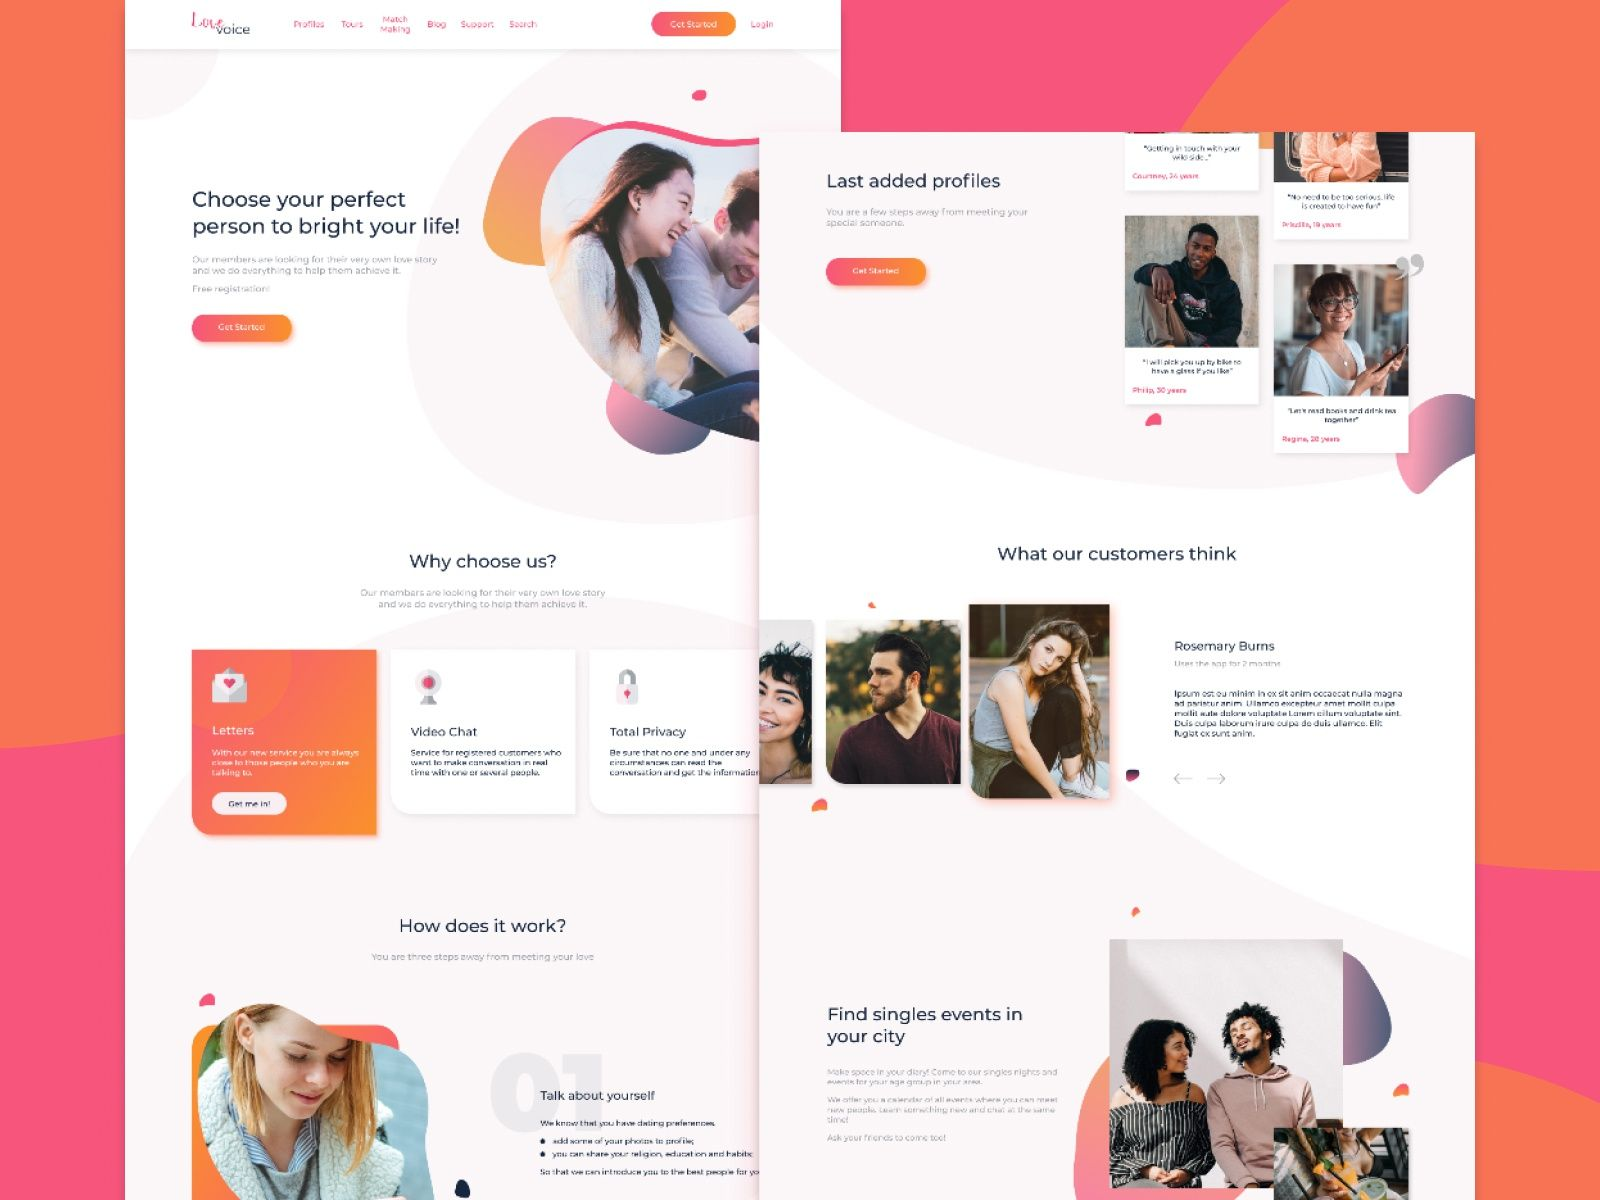 recently dating site designed